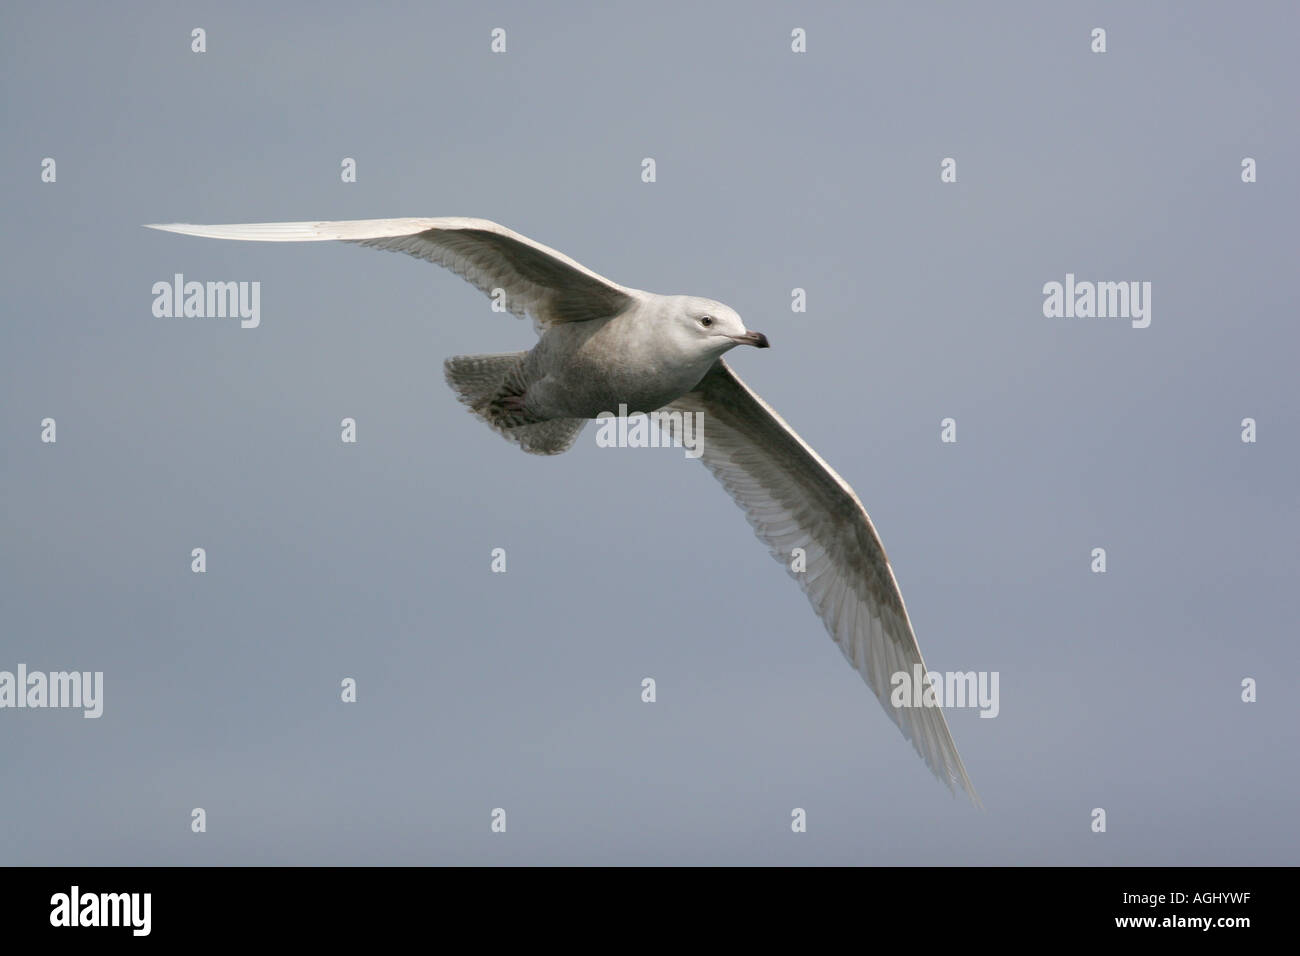 Iceland Gull, Larus glaucoides, 1st winter, Outer Hebrides, Scotland - Stock Image